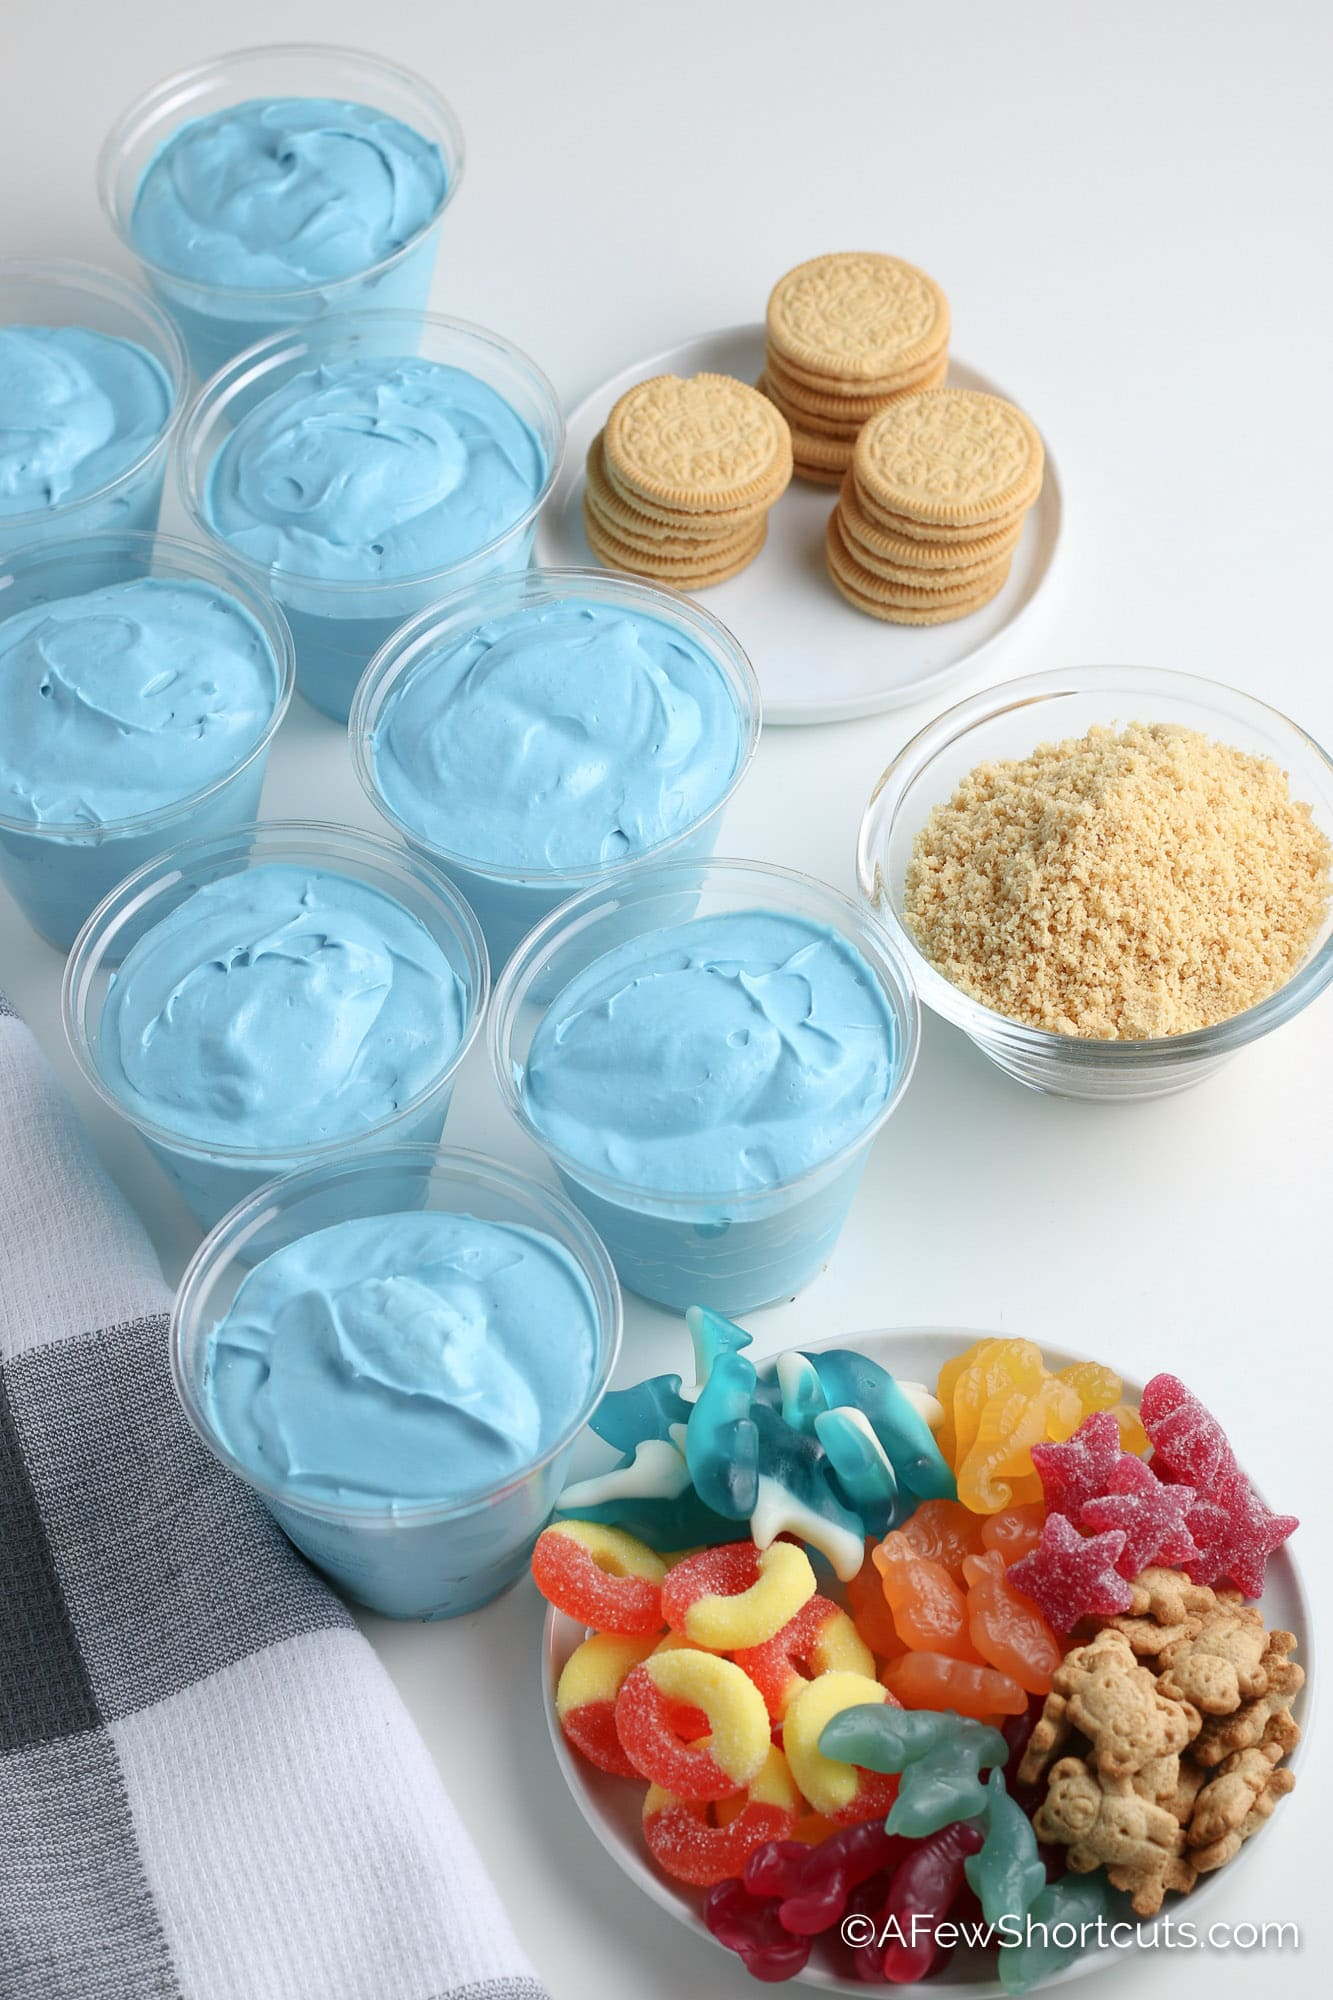 Blue pudding in dessert cups with plate of gummy candy and crushed vanilla cookies